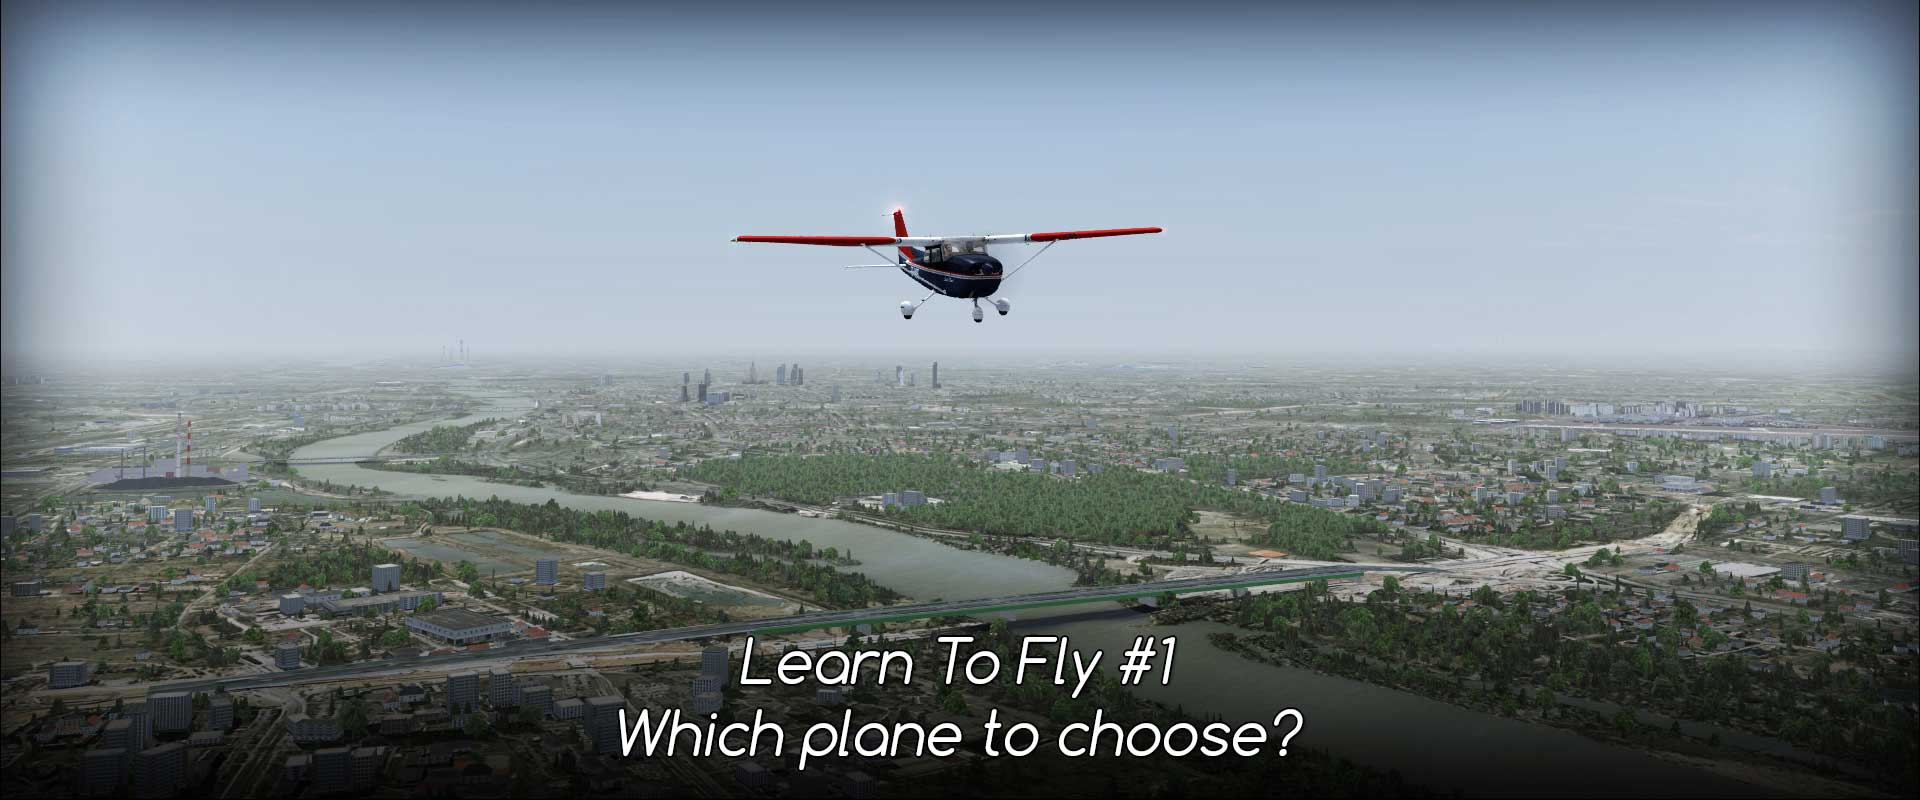 Learn To Fly (#1) - Which plane to choose?